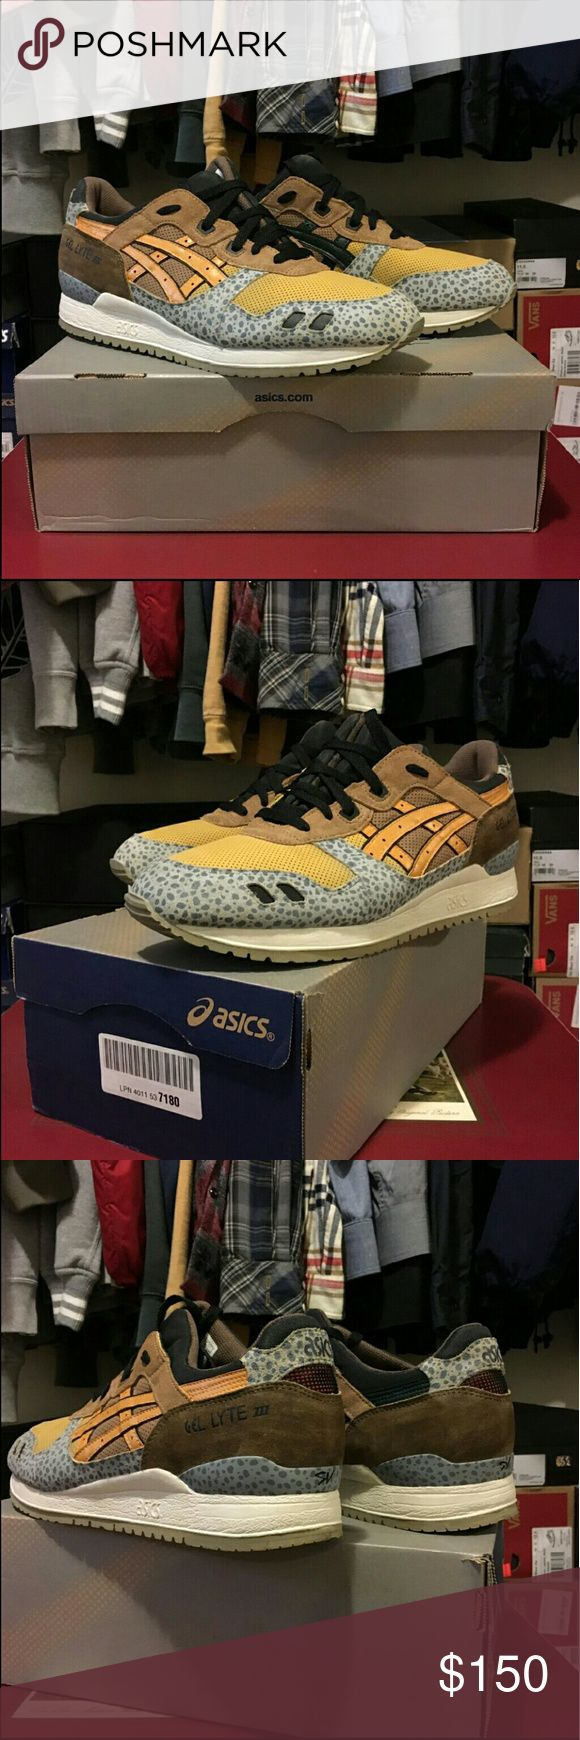 custom Asics Gel Lyte III Custom one of one Asics Gel Lyte III. Designed like Air Max 1 Atmos Safari. Men's size 12.5 brand new never worn. I paid $250 for these customs. Price is firm   Supreme Palace Bape Bathing Ape Yeezy Kith Nike Adidas FTP Asics Shoes Sneakers